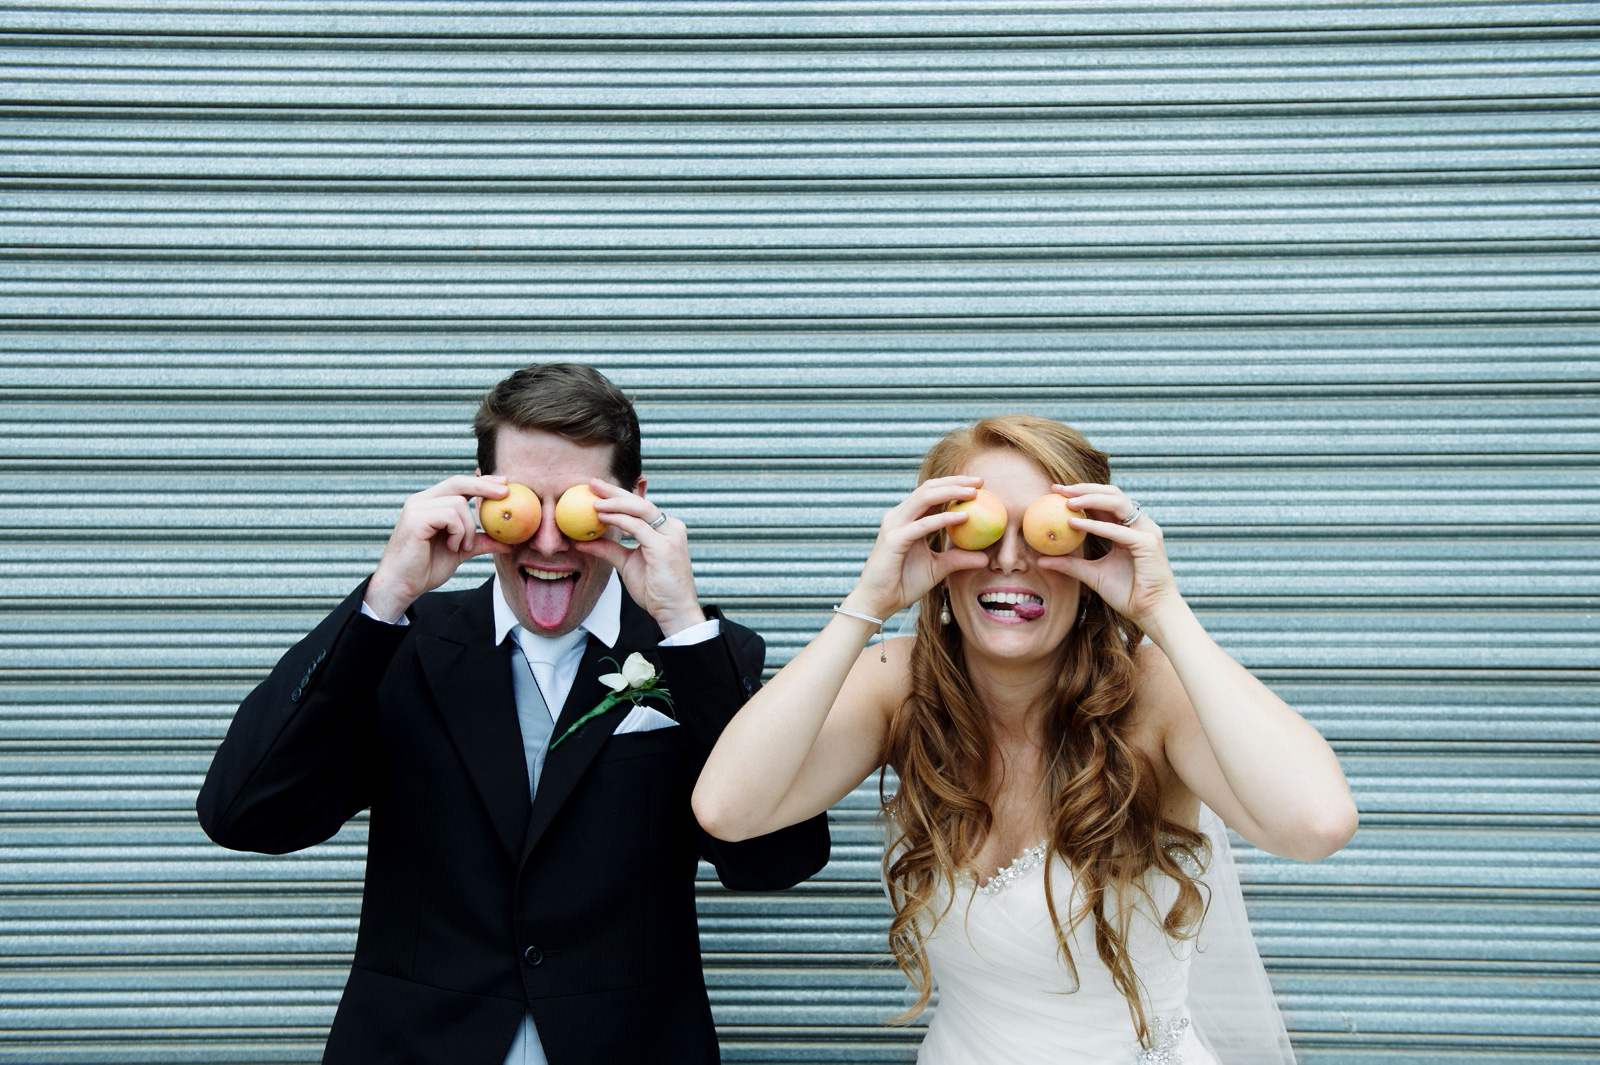 Quirky wedding pic with grapefruit